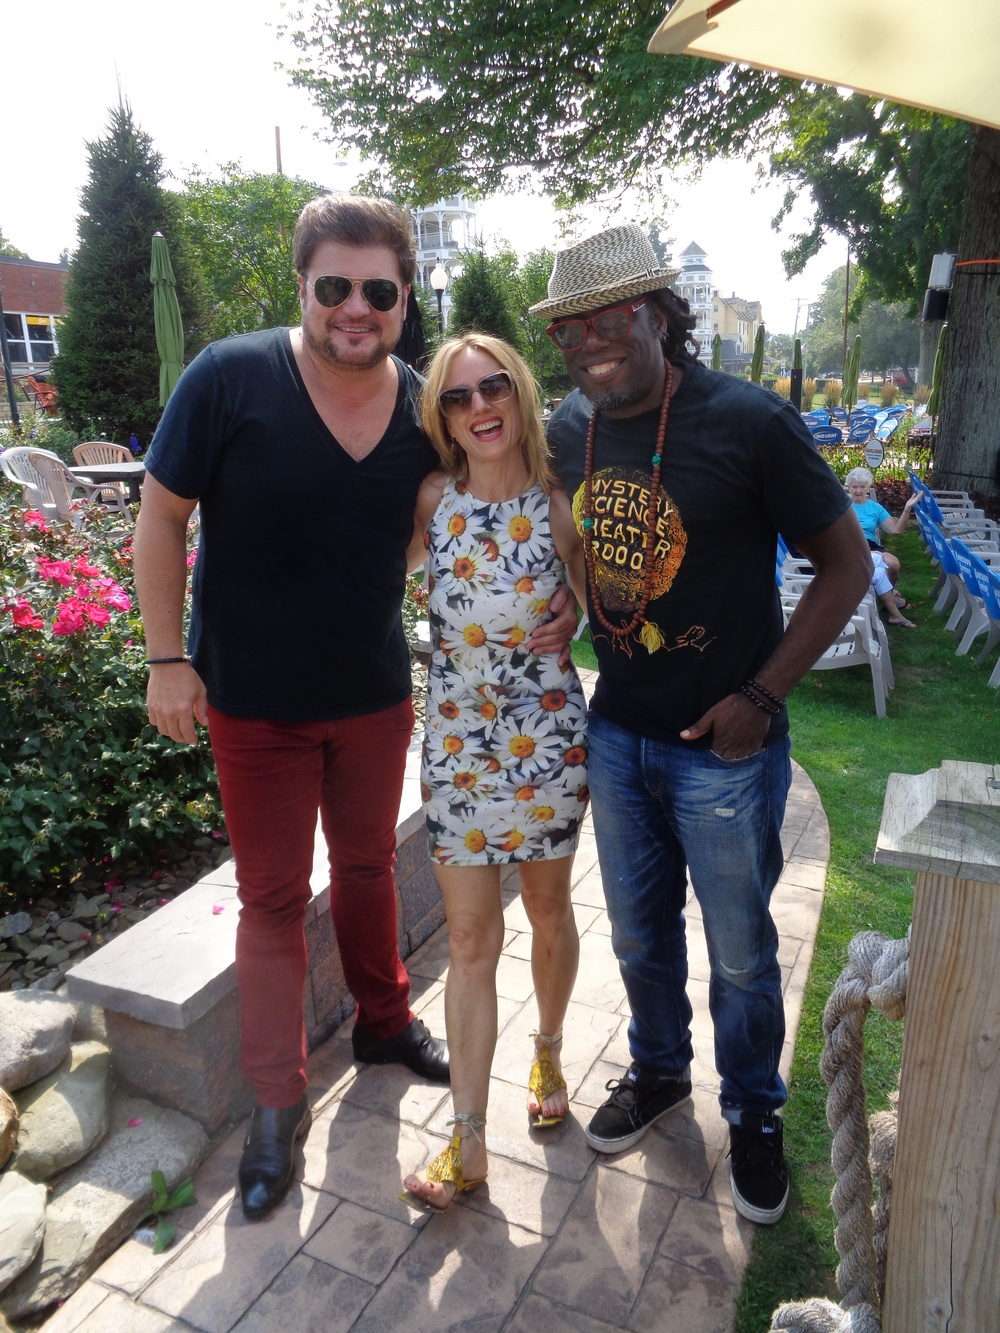 can't beat hanging out with these 2 handsome guys ;) The superstar #RobEvan & my amazing bass player #LavondoThomas